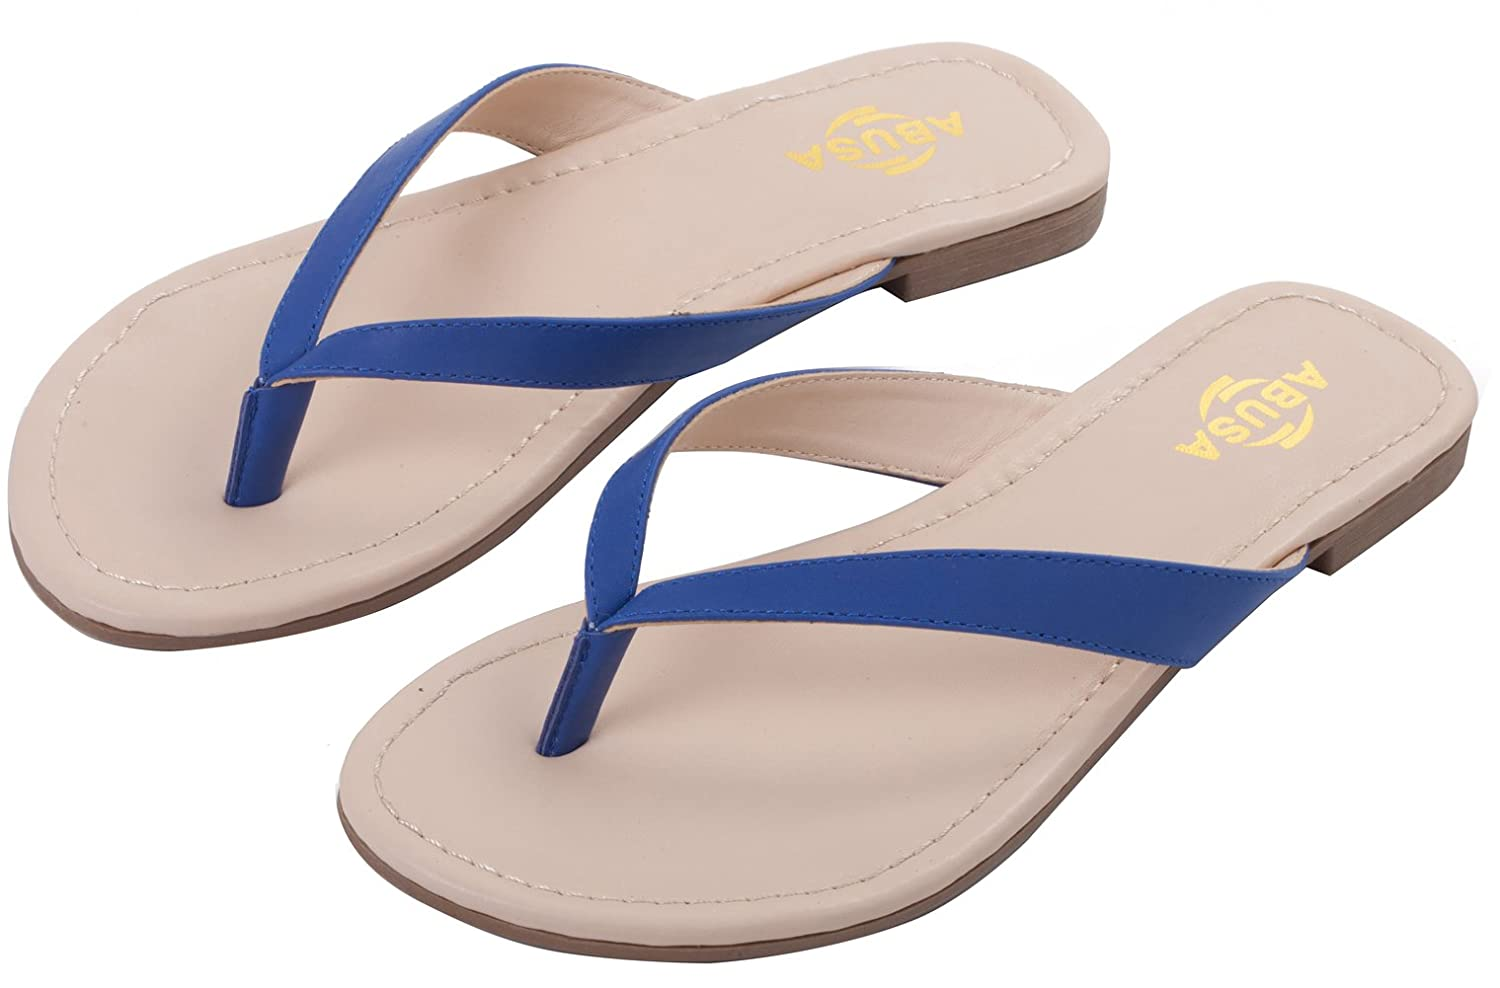 ABUSA Damen Simple Classic Leder Flip Flops: Amazon.de: Schuhe & Handtaschen